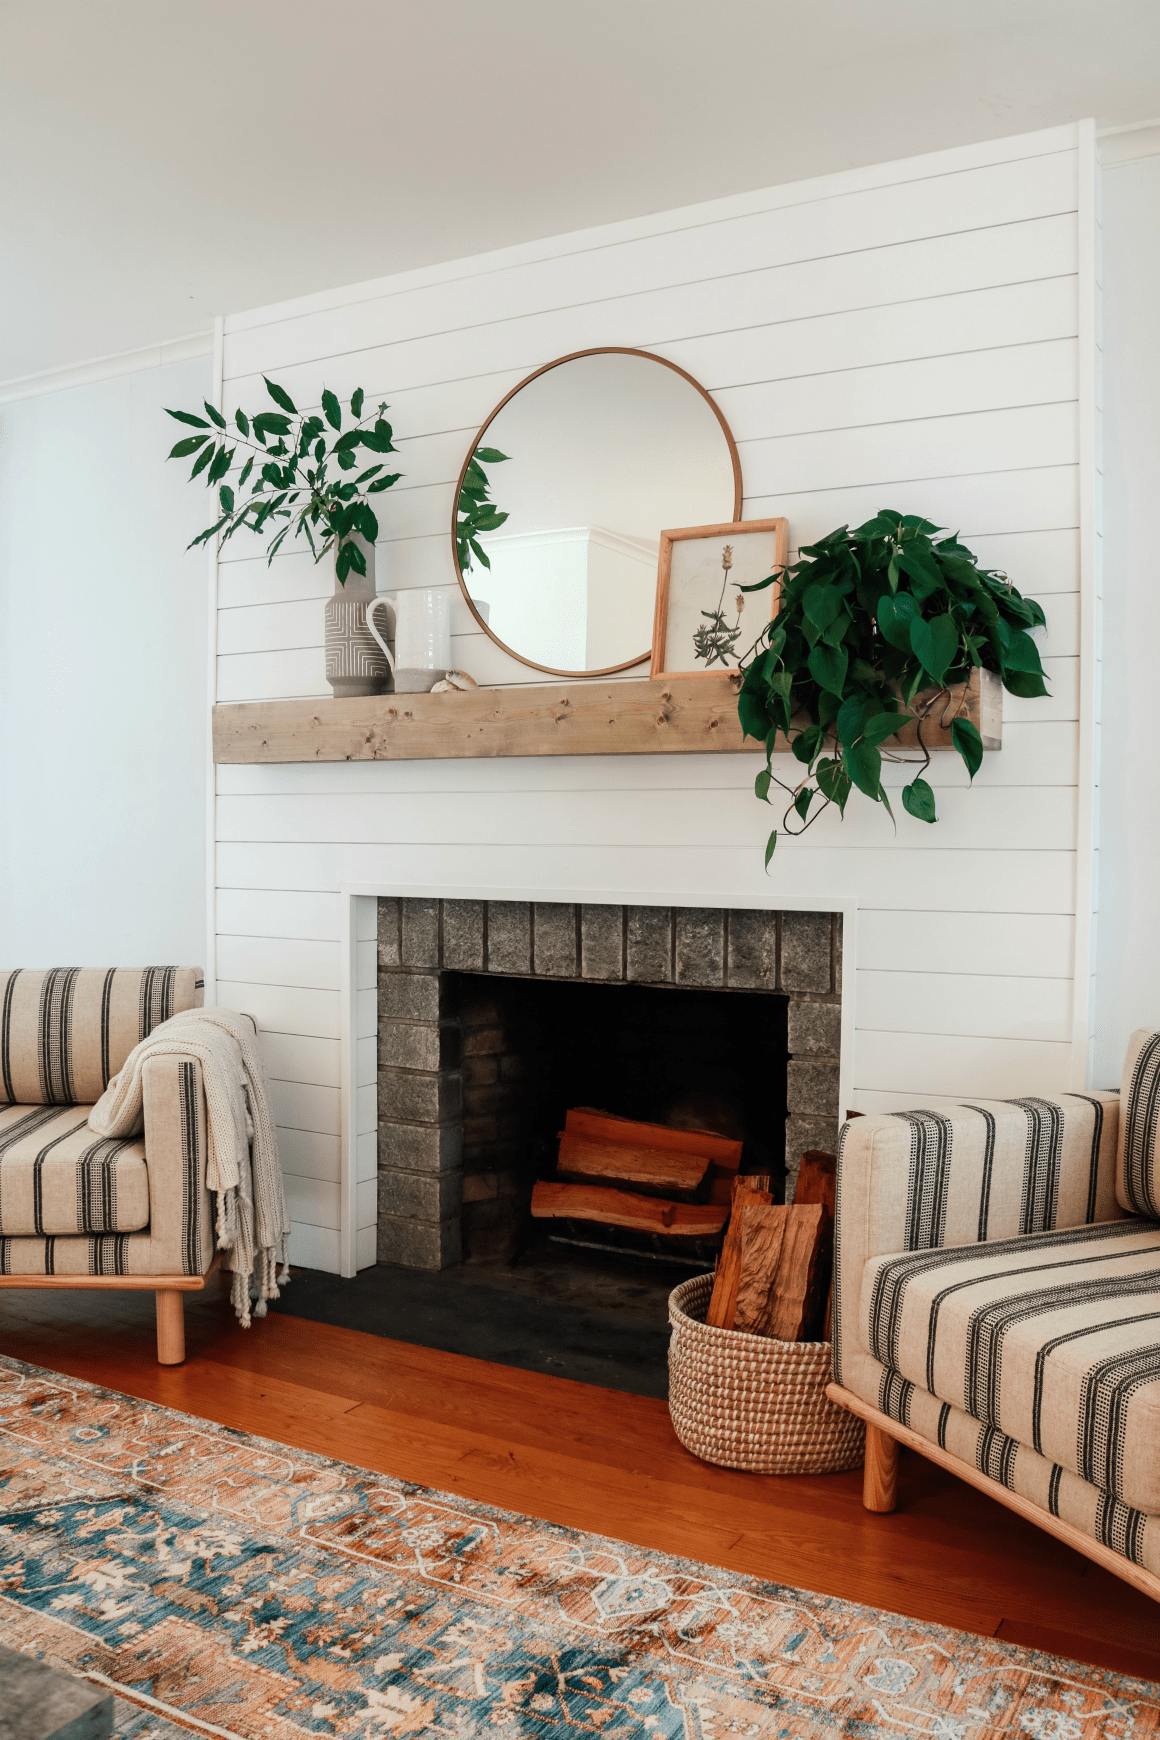 7 Small Space Makeovers: Small Space Living Room, Living Room With Fireplace, Cozy